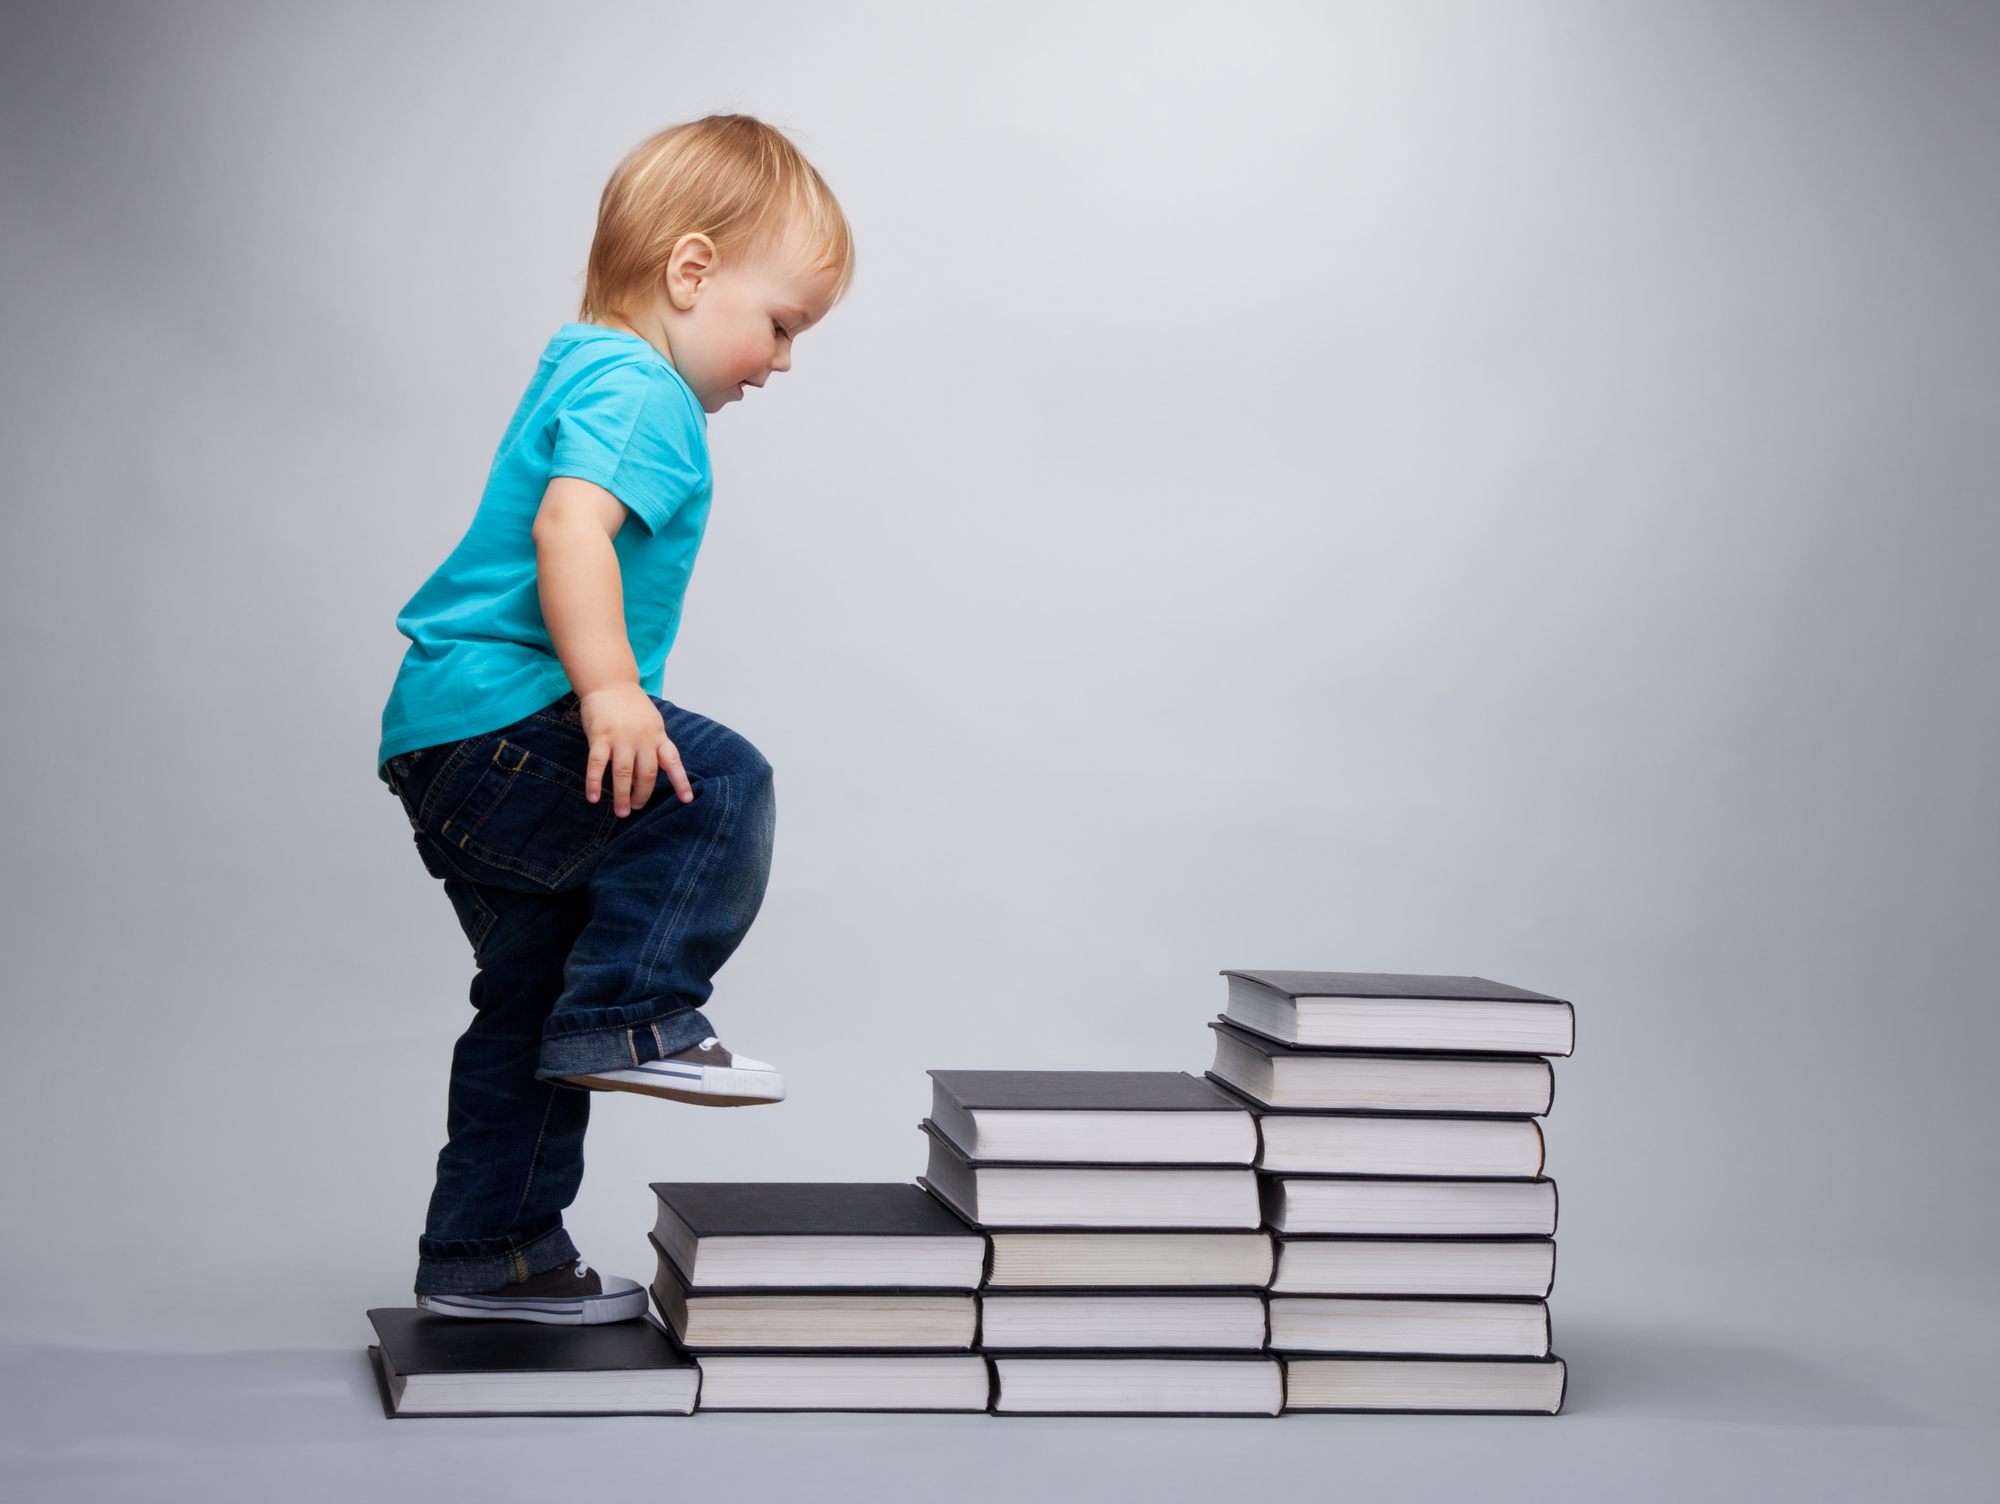 baby walking on books